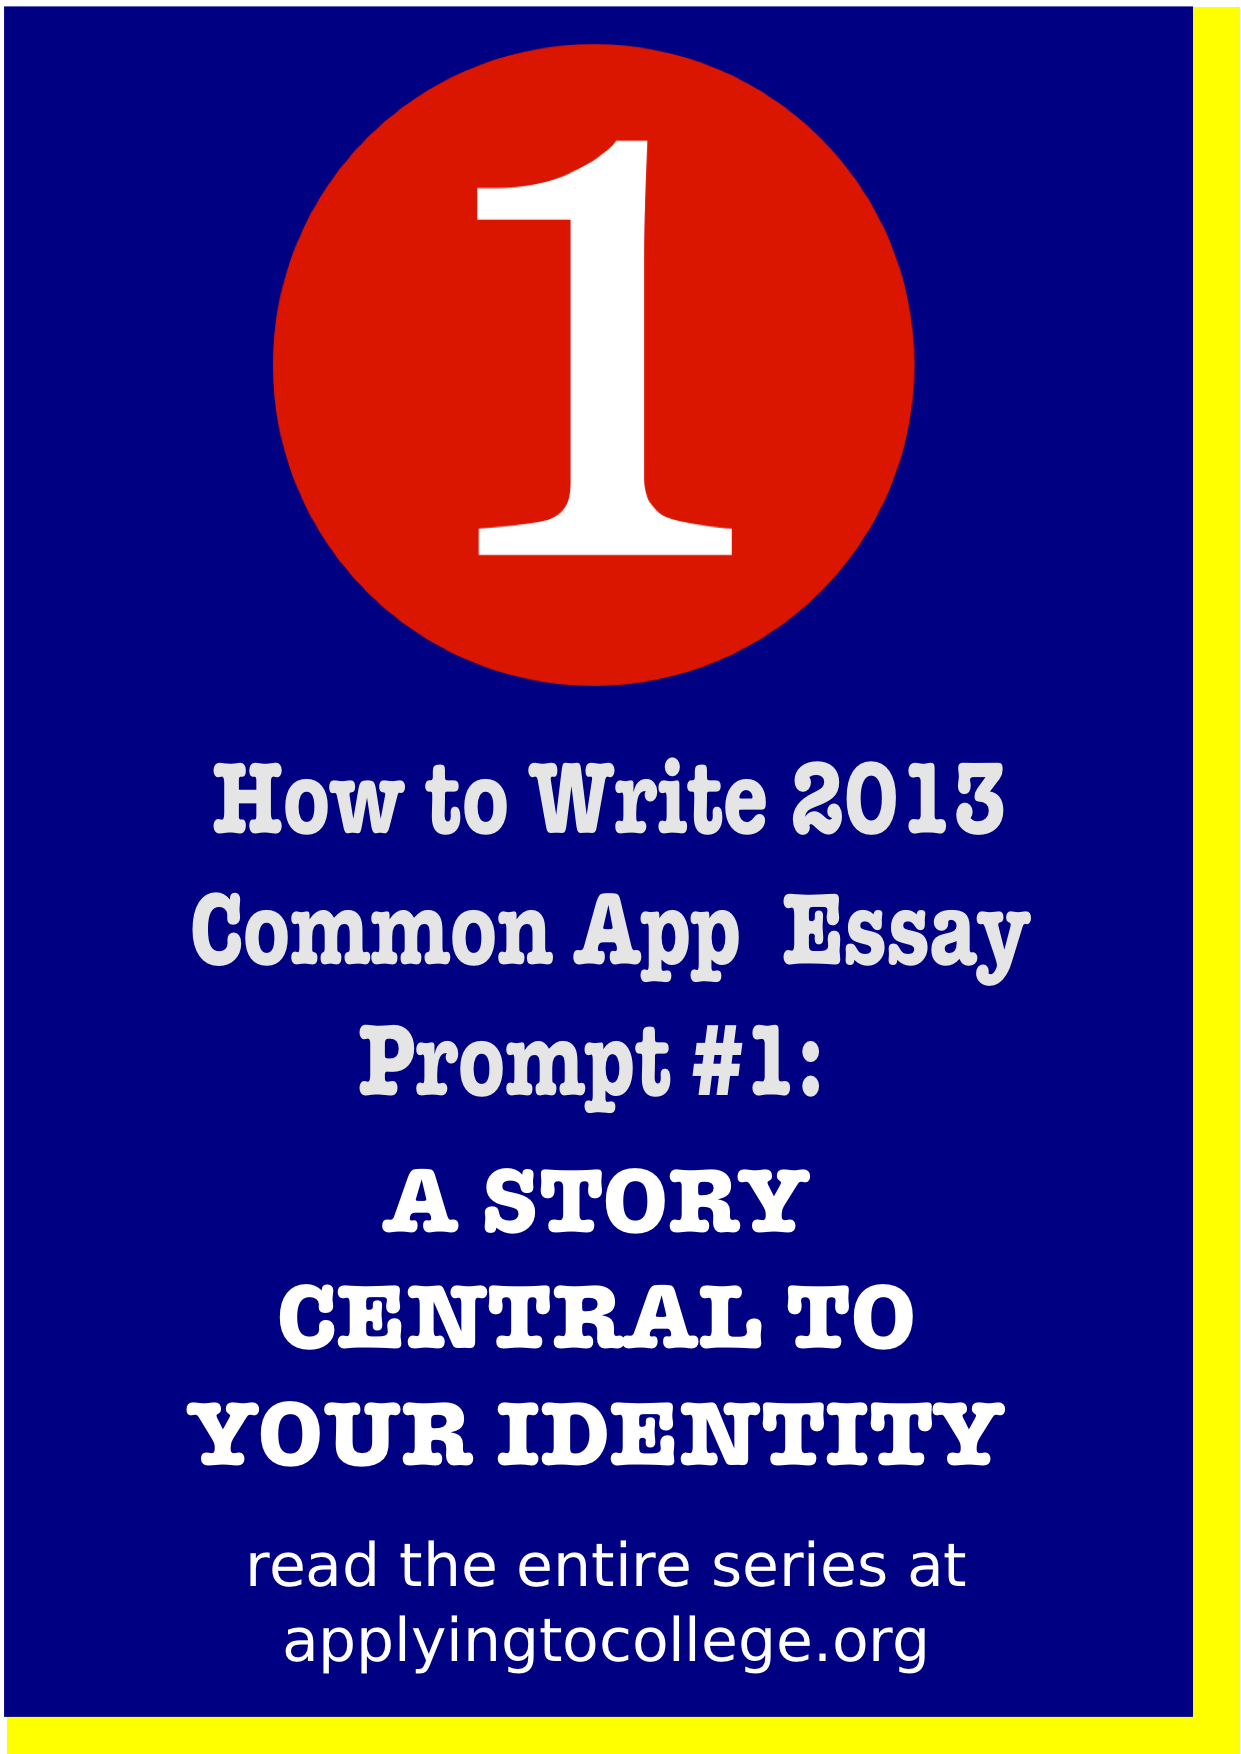 college admissions essay prompts 2013 The people behind the common application have just released the new essay prompts (pdf link) for college applicants who apply in the 2013-2014 admissions season.